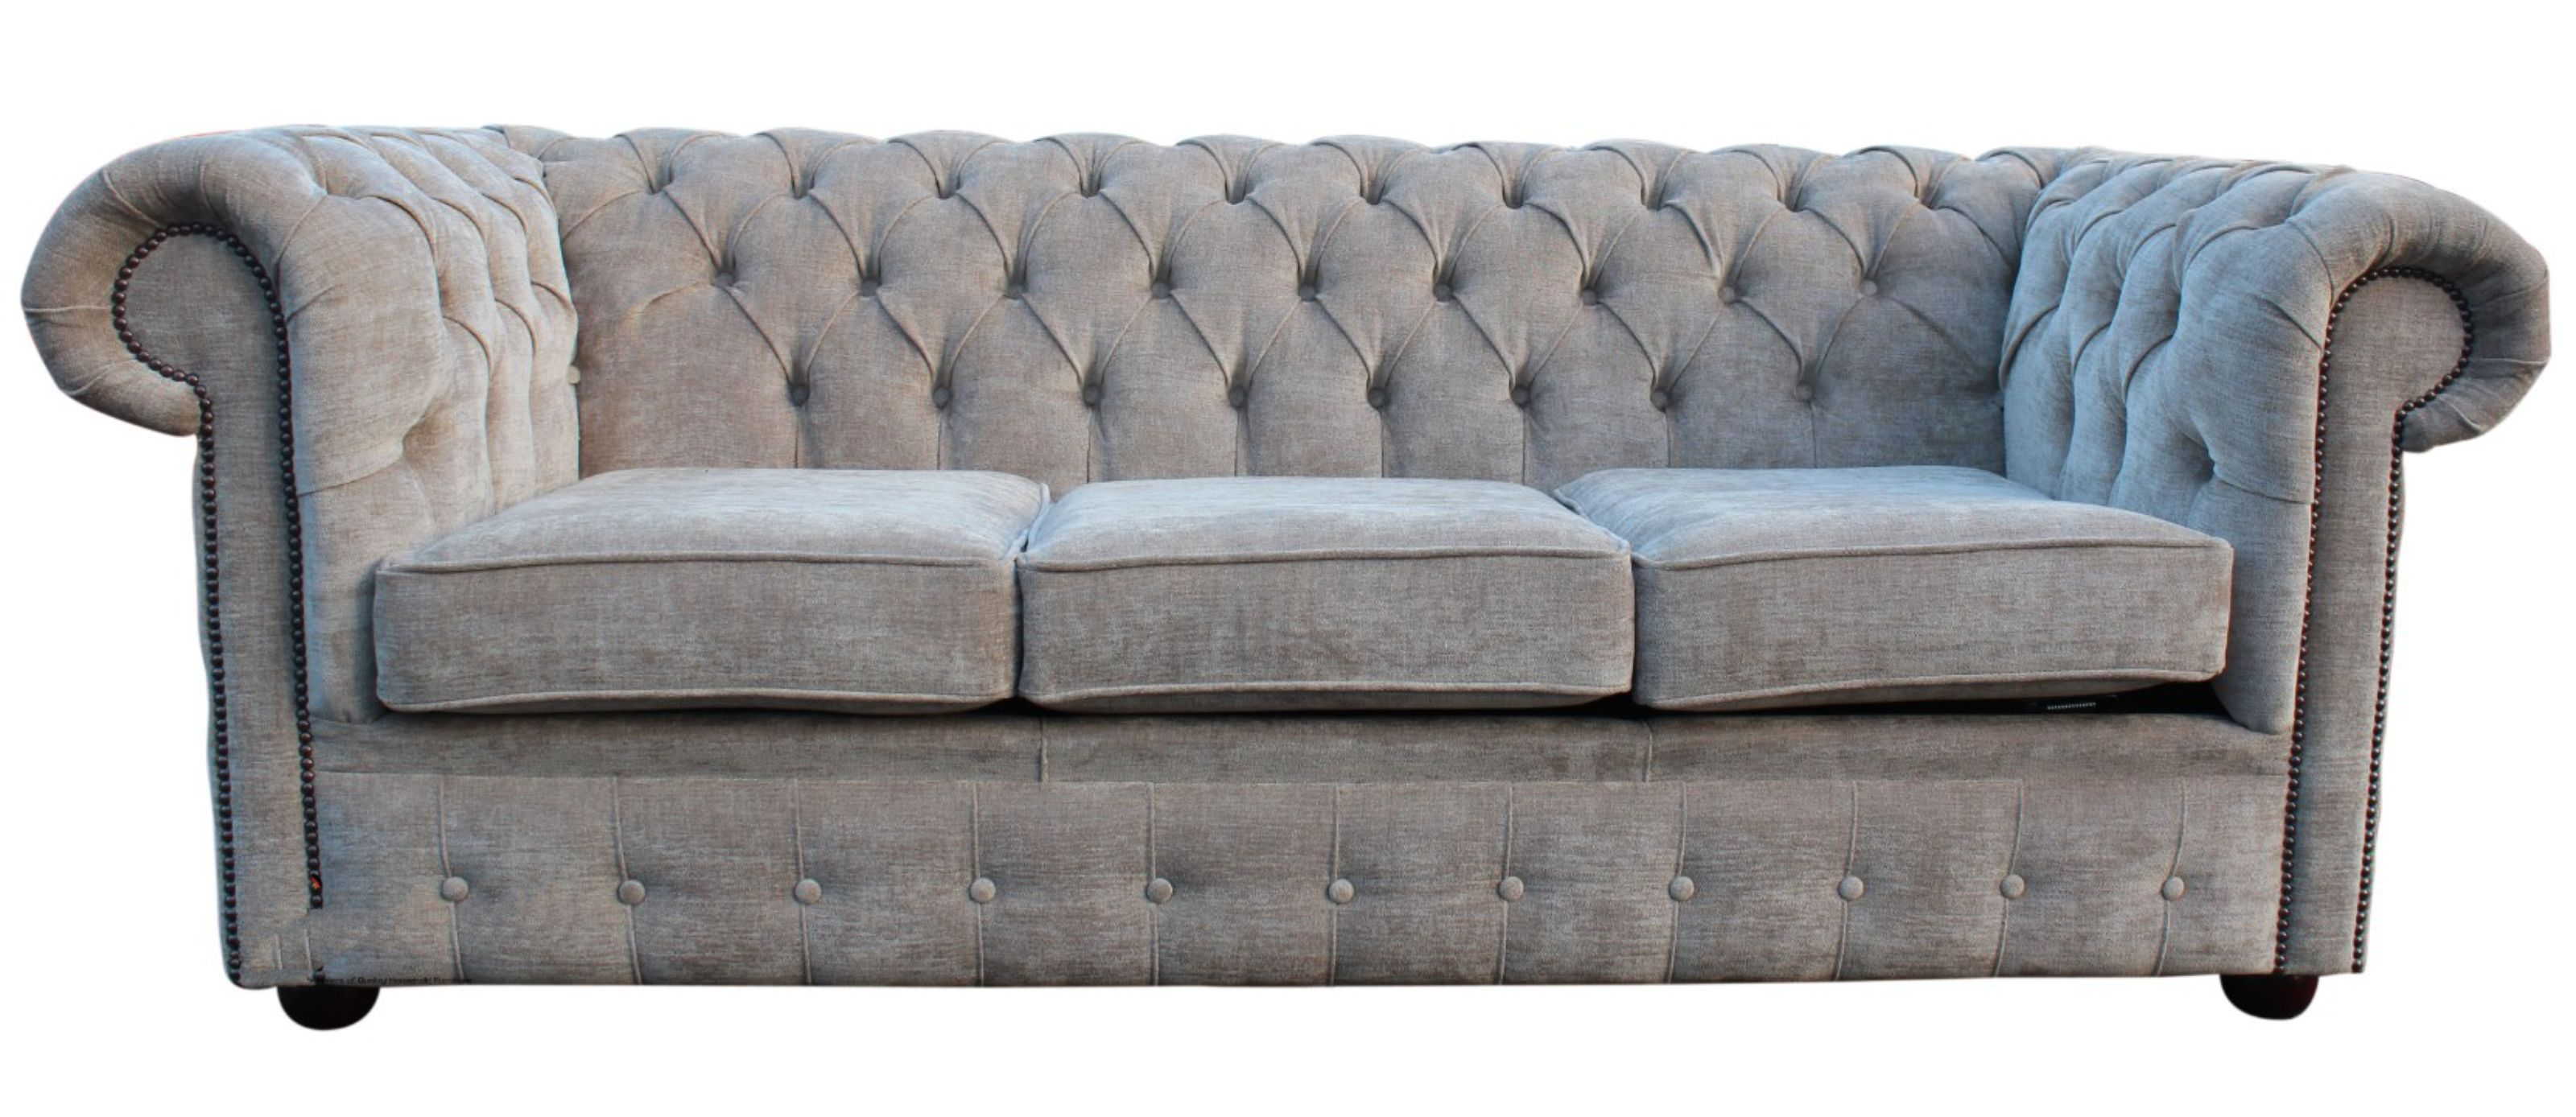 Awe Inspiring Chesterfield 3 Seater Settee Sofa Bed Velluto Hessian Mink Fabric Andrewgaddart Wooden Chair Designs For Living Room Andrewgaddartcom